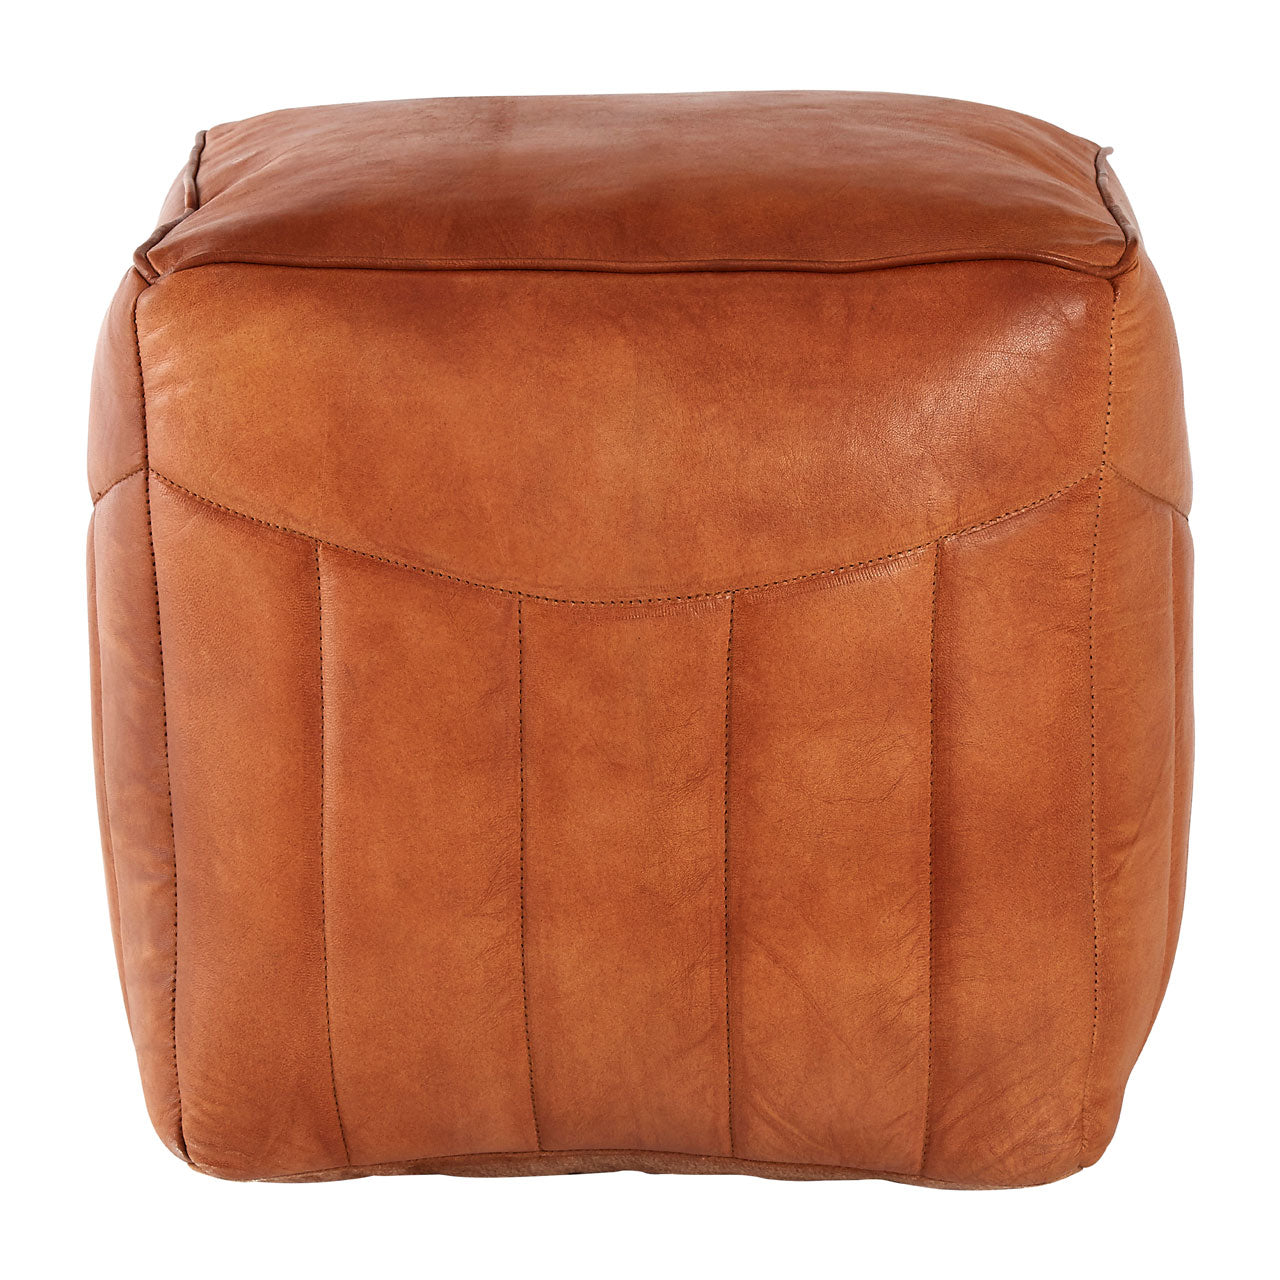 Buffalo Pouffe Brown - Ezzo